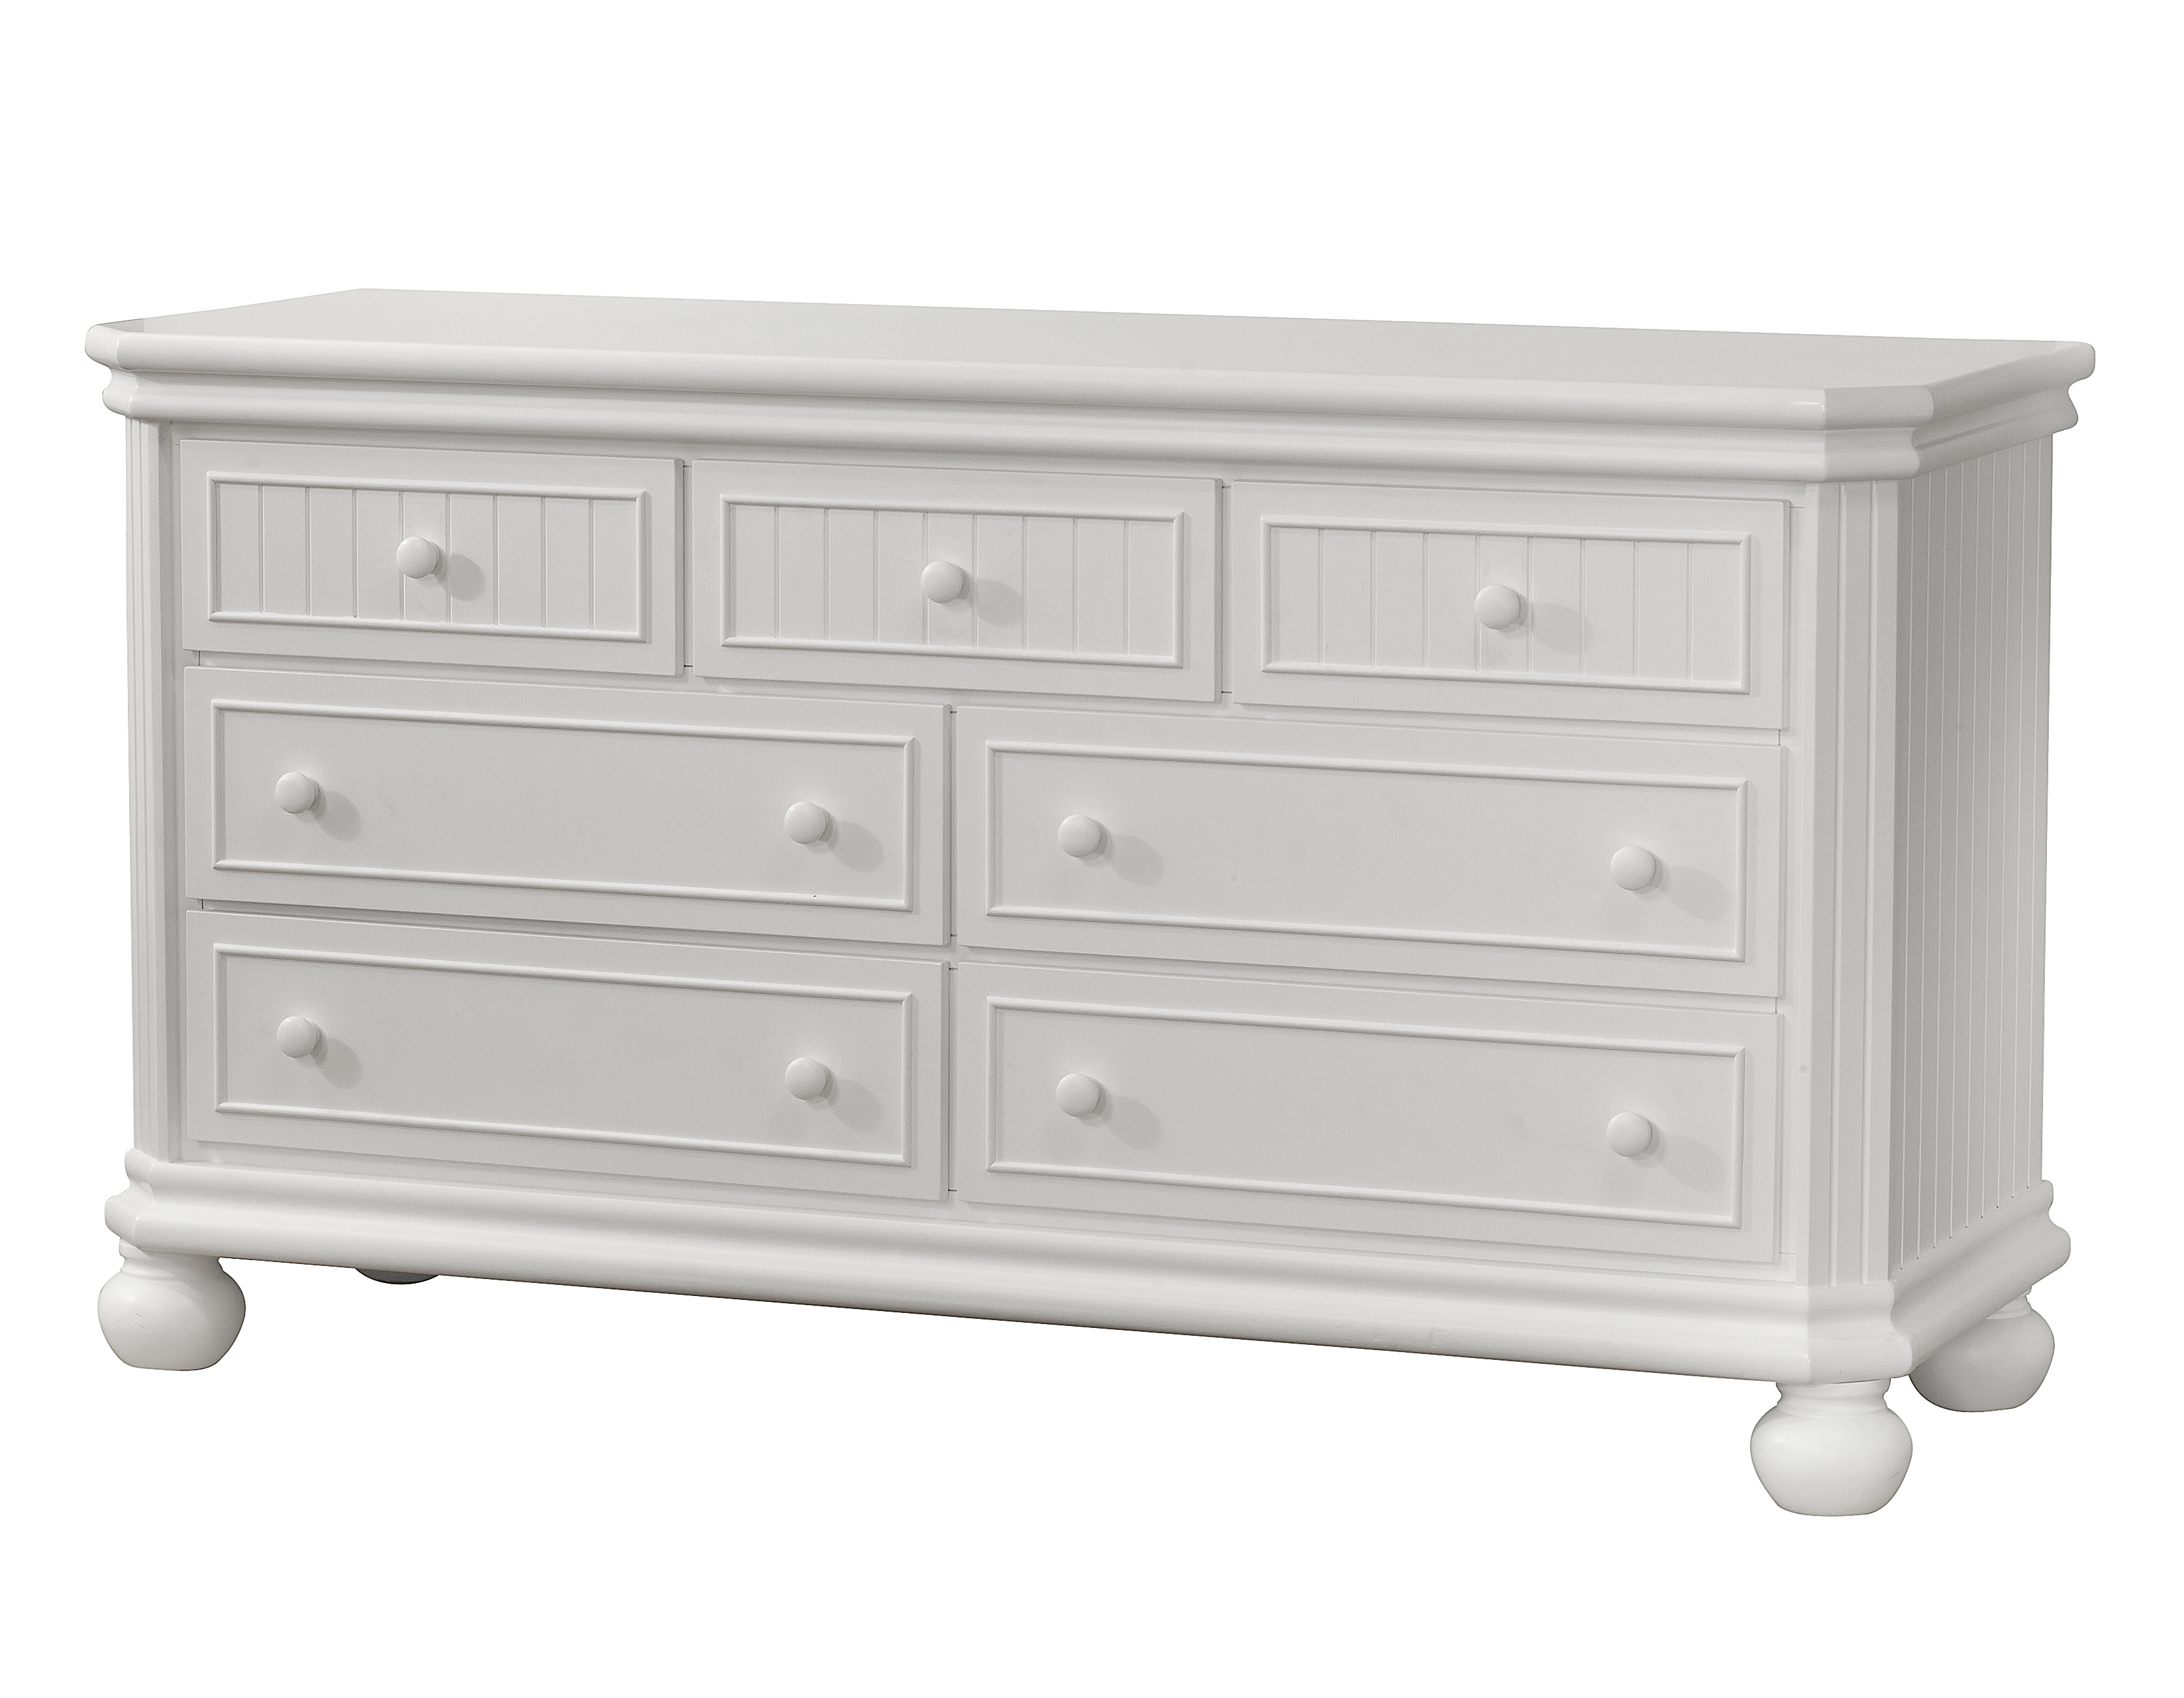 Finley RTA 6 Drawer Double Dresser